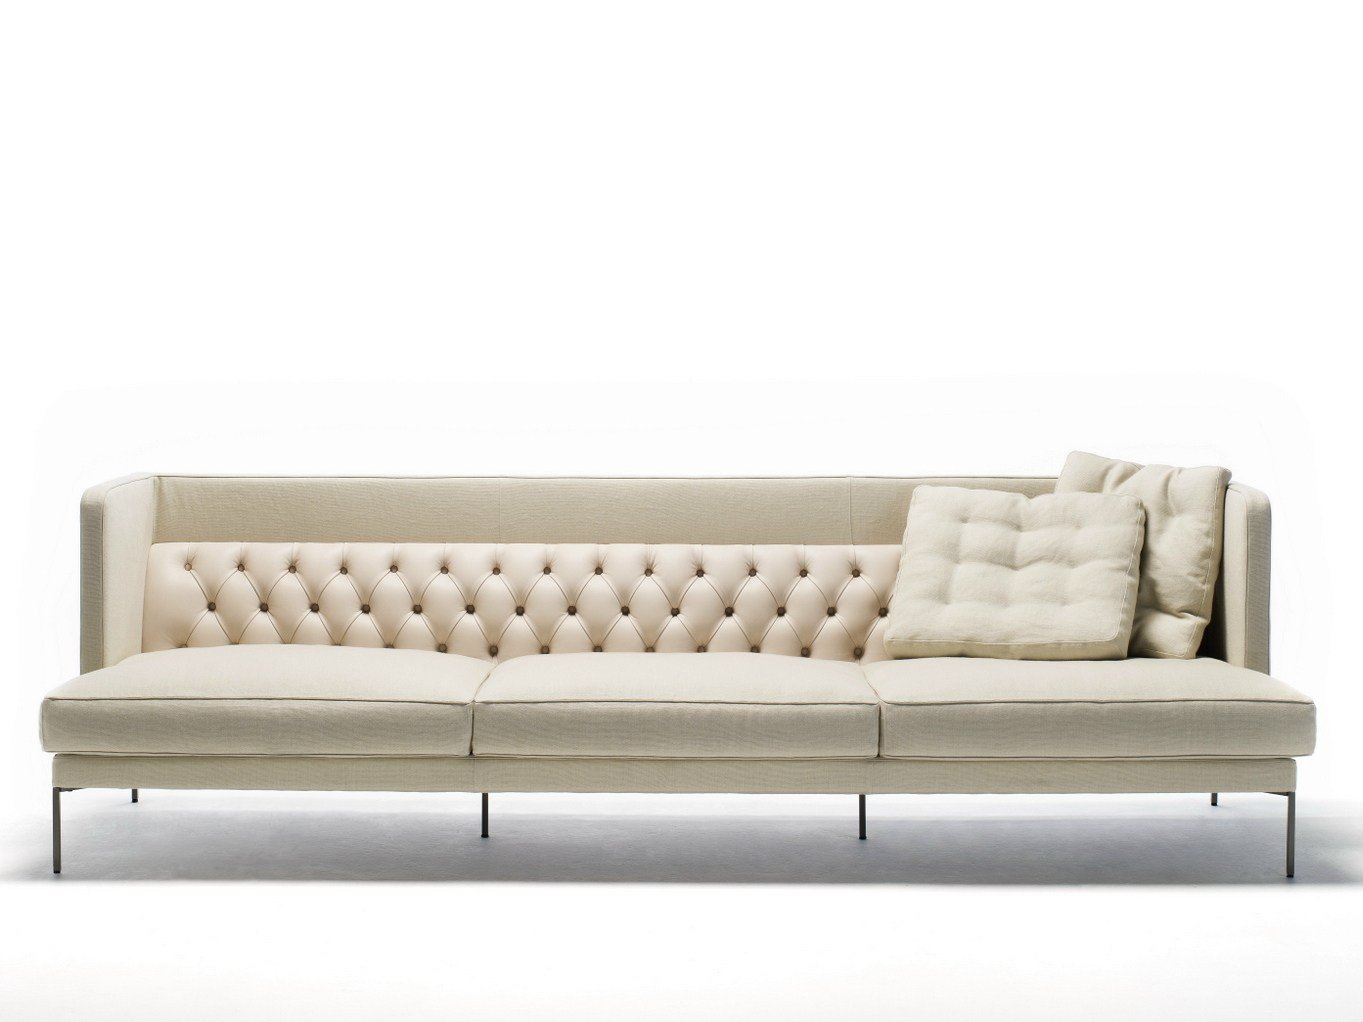 lipp sofa by living divani design piero lissoni